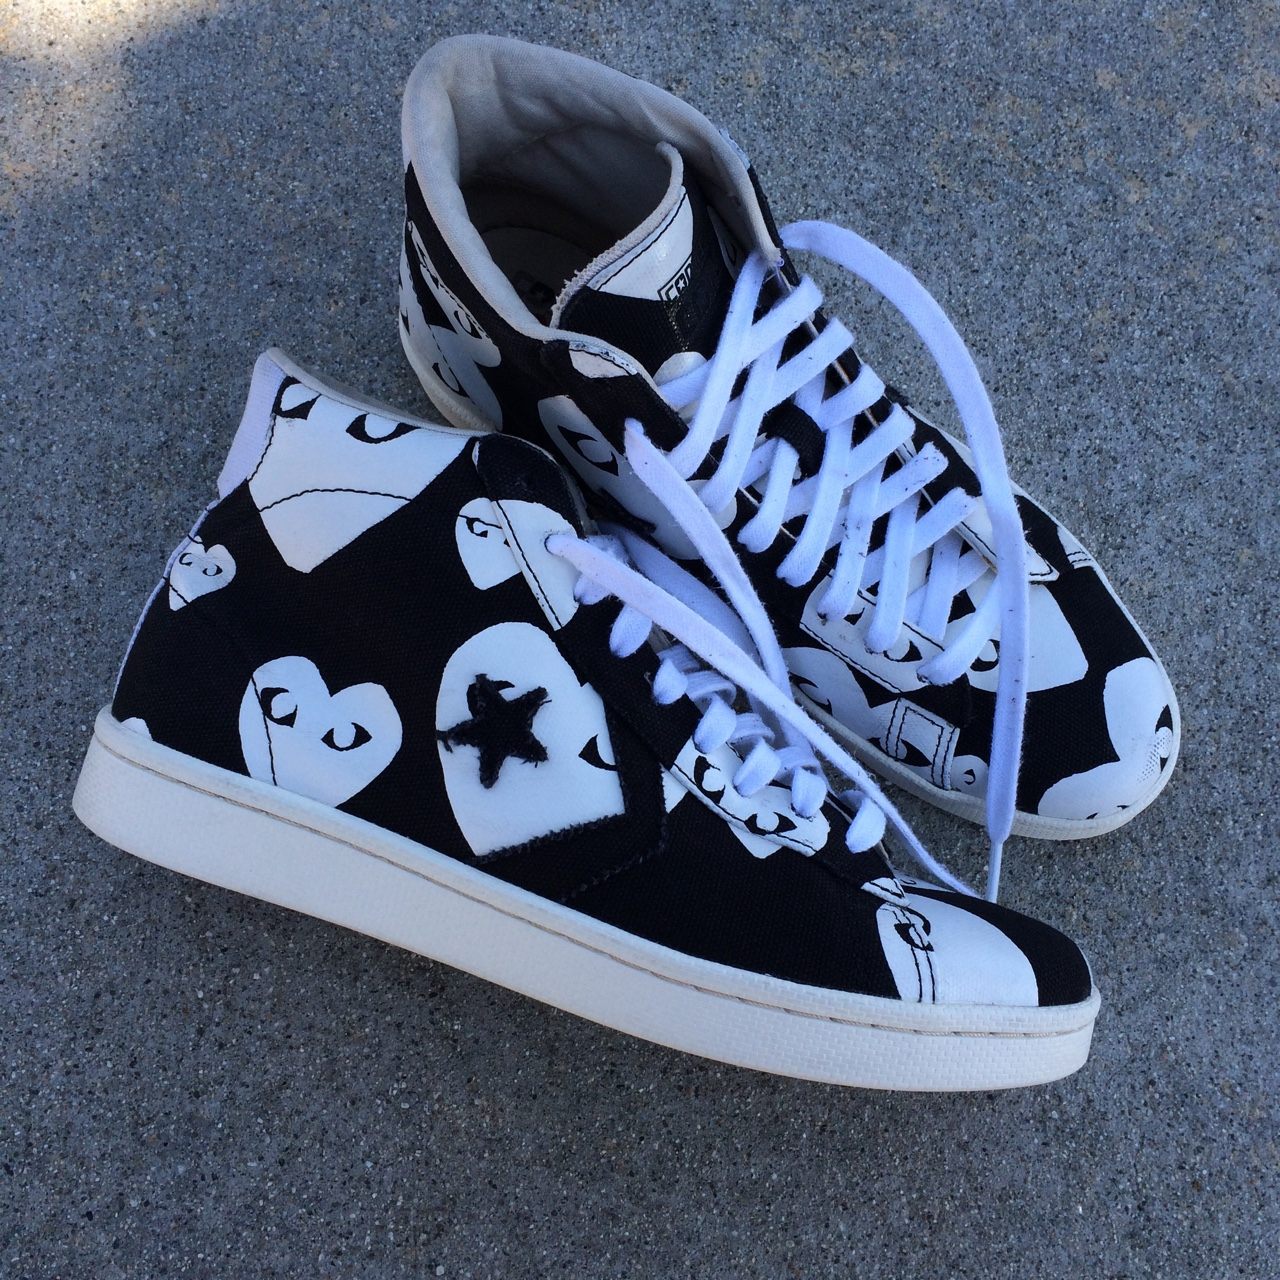 COMME DES GARCONS PLAY X CONVERSE PRO LEATHER HIGH.... - Depop